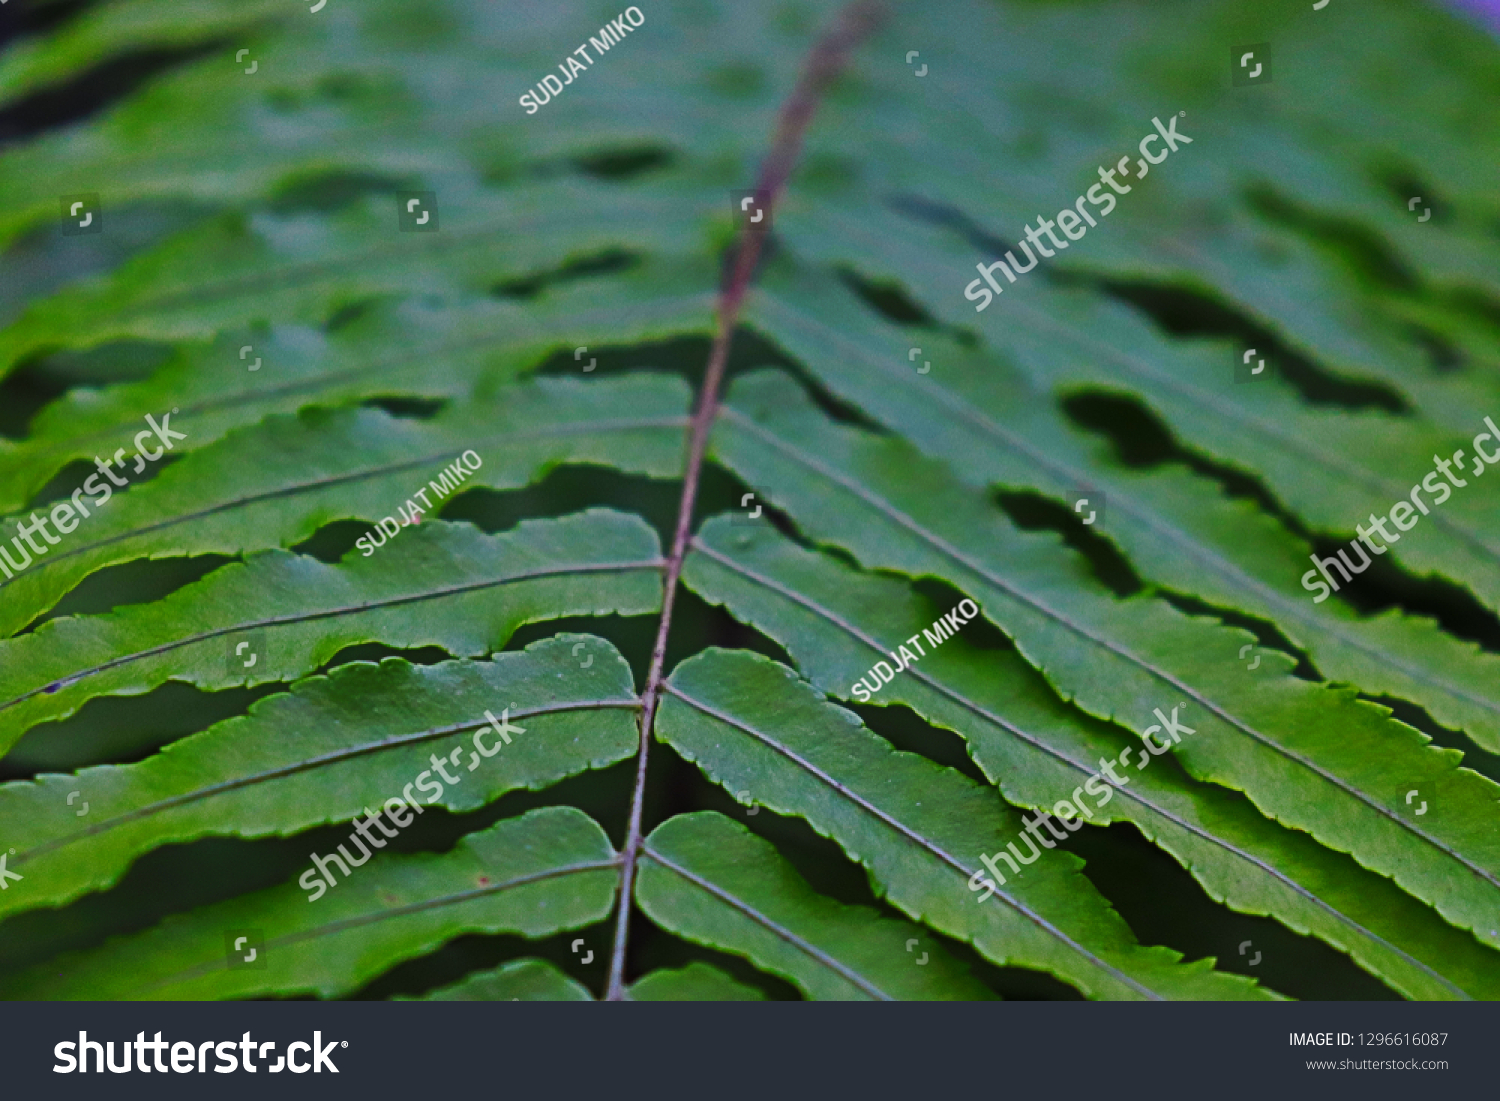 Green Fern Tropical Leaves Leaf Arrangement Stock Photo Edit Now 1296616087 Collection of tropical leaves free vector. shutterstock